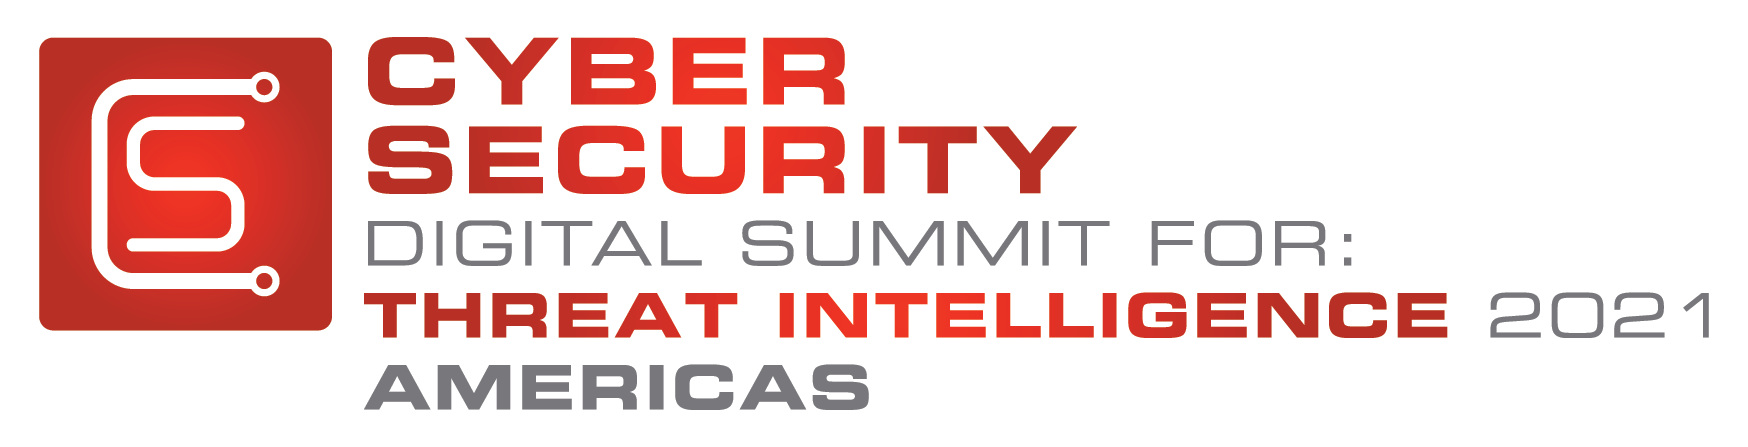 Cyber Security Digital Summit: Threat Intelligence Americas 2021